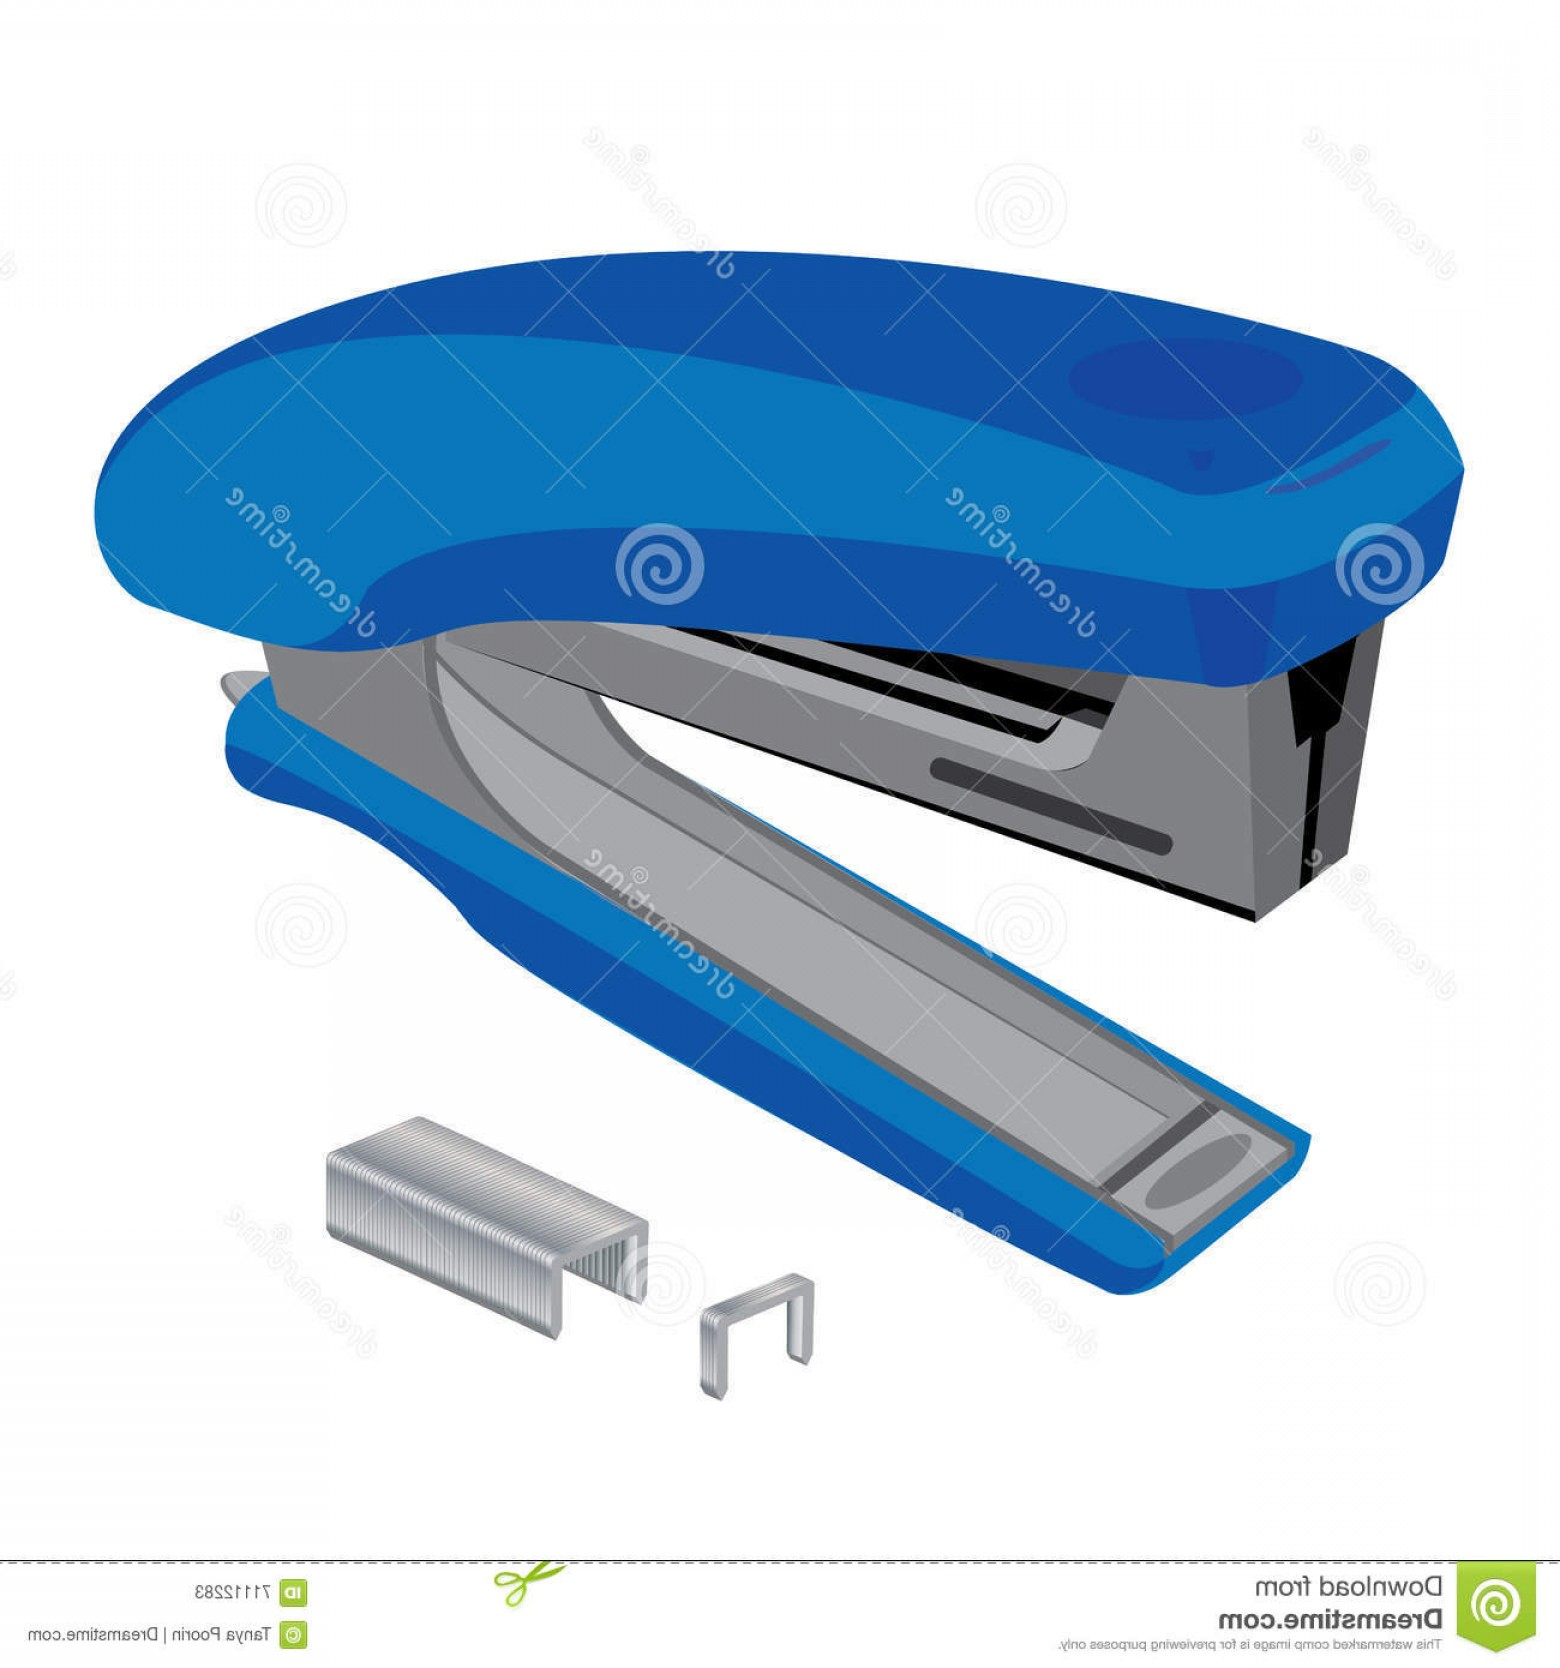 White Staples Vector Logo: Stock Illustration Stapler Staples Stapler Staples White Background Object Tool Business Image